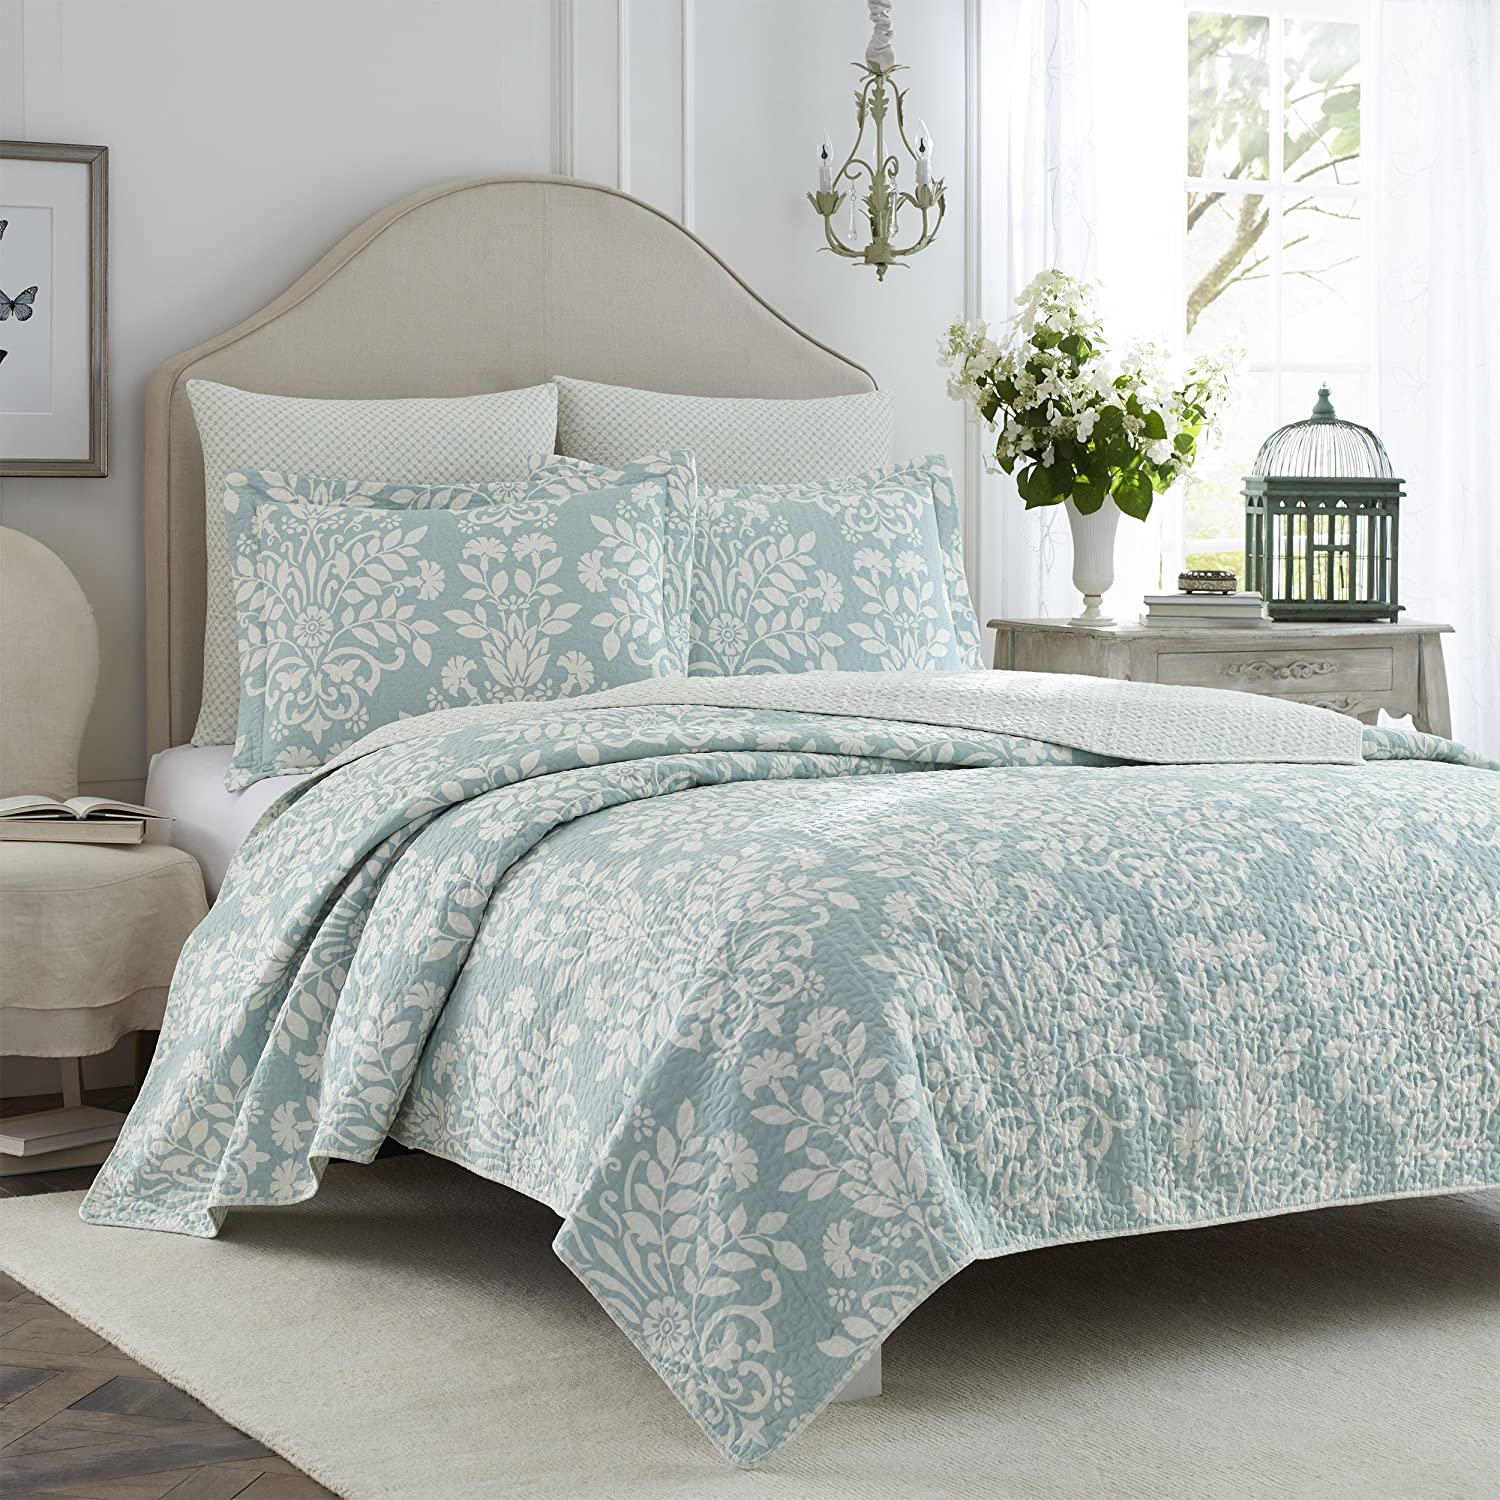 sheridan white abelia cover quilt set hr